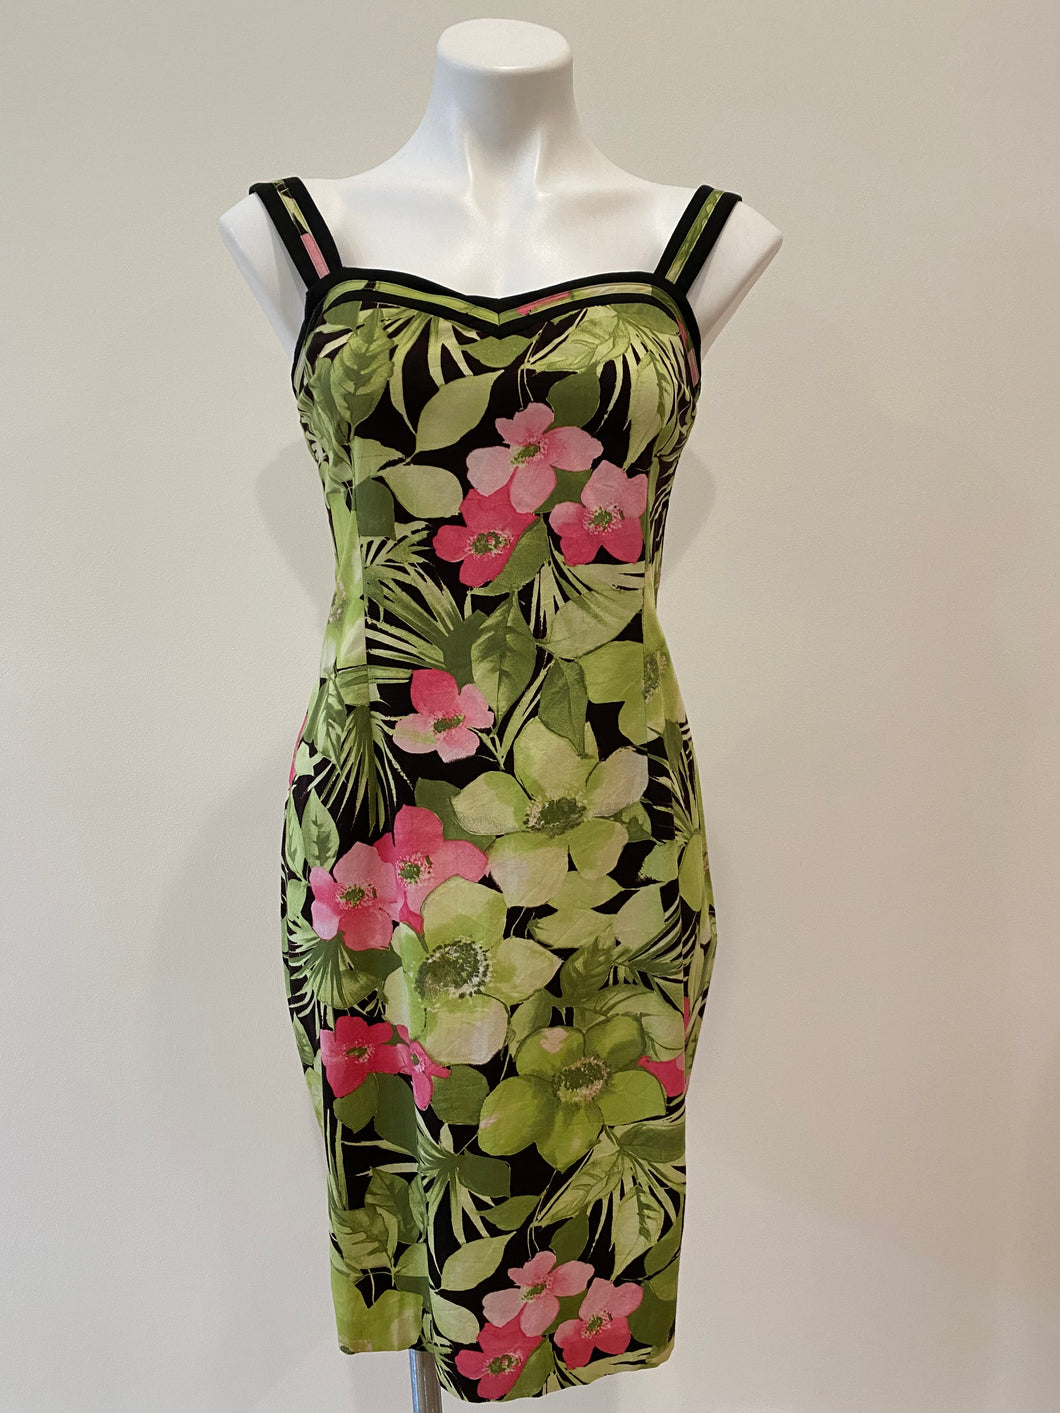 The Dvora Dress, 1990's